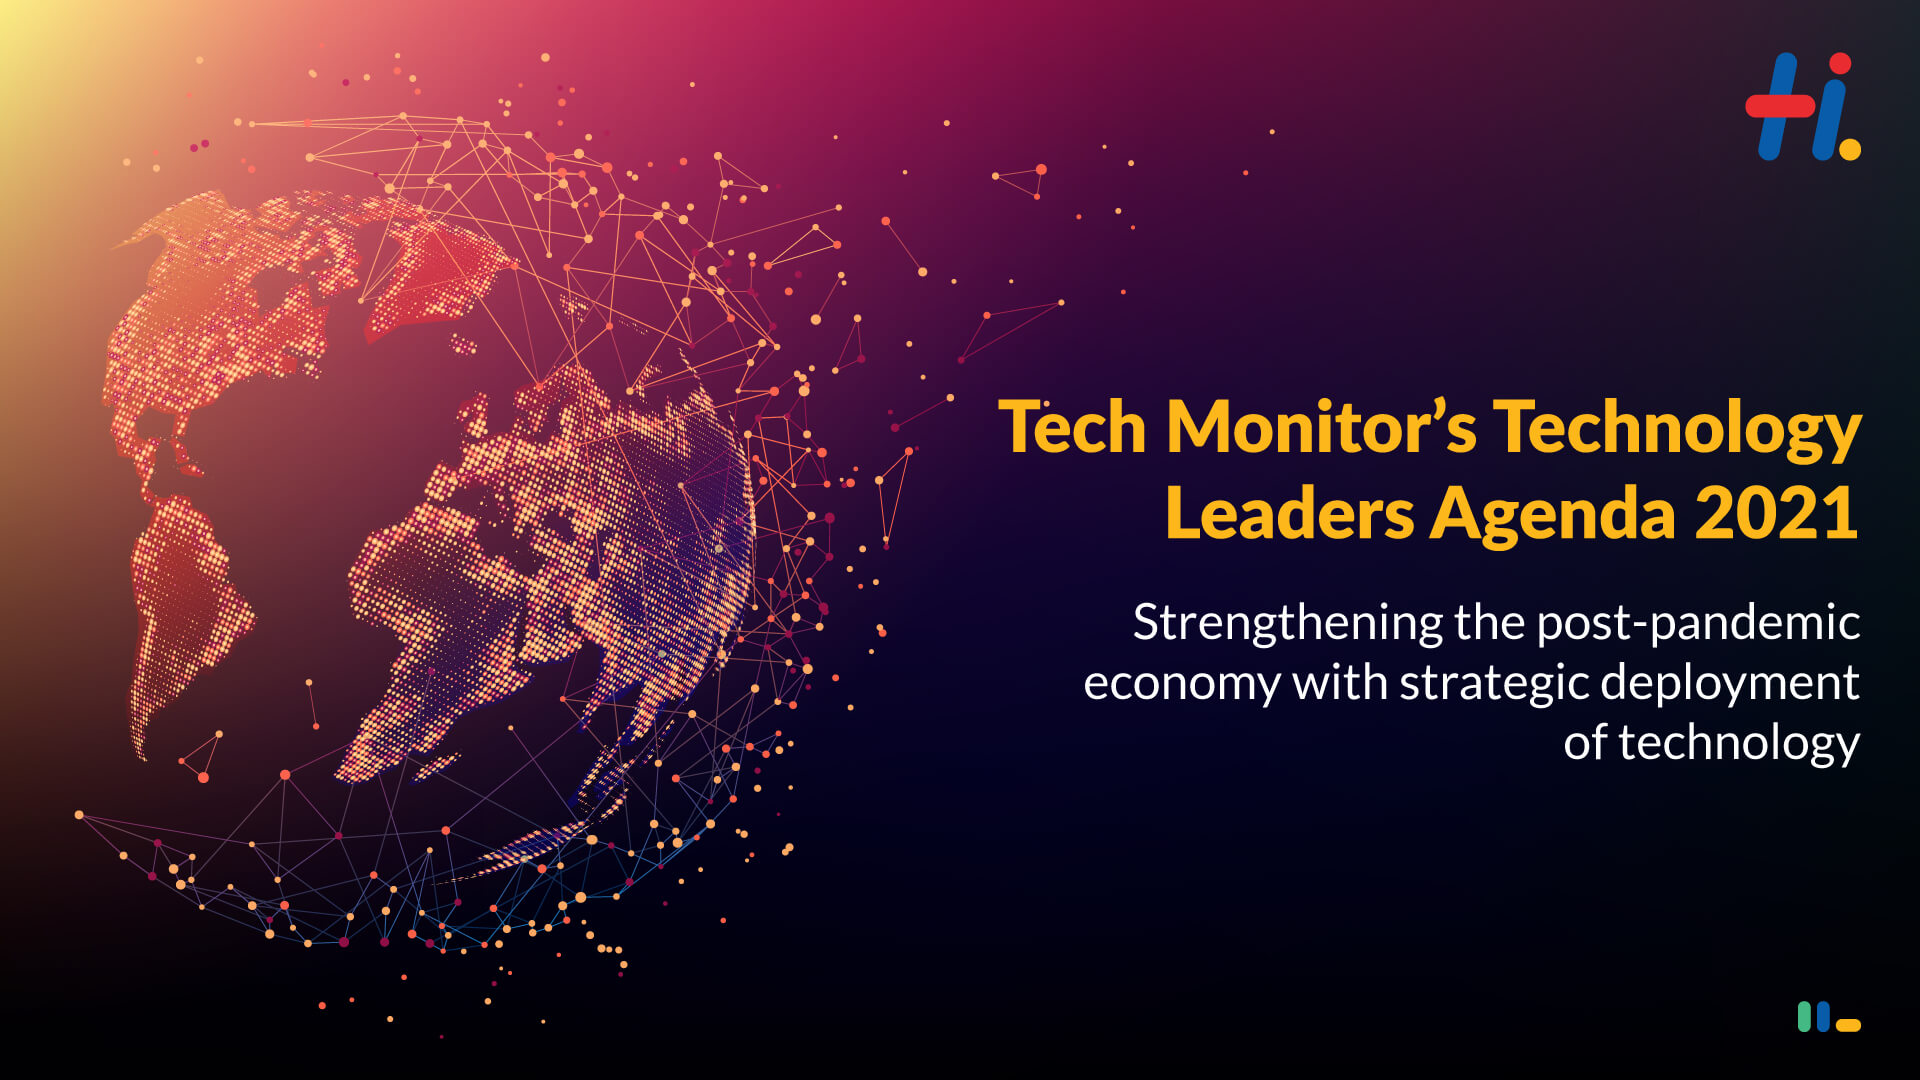 Tech Monitor's Technology Leaders Agenda 2021 on the Technology Priorities in the Post-pandemic World